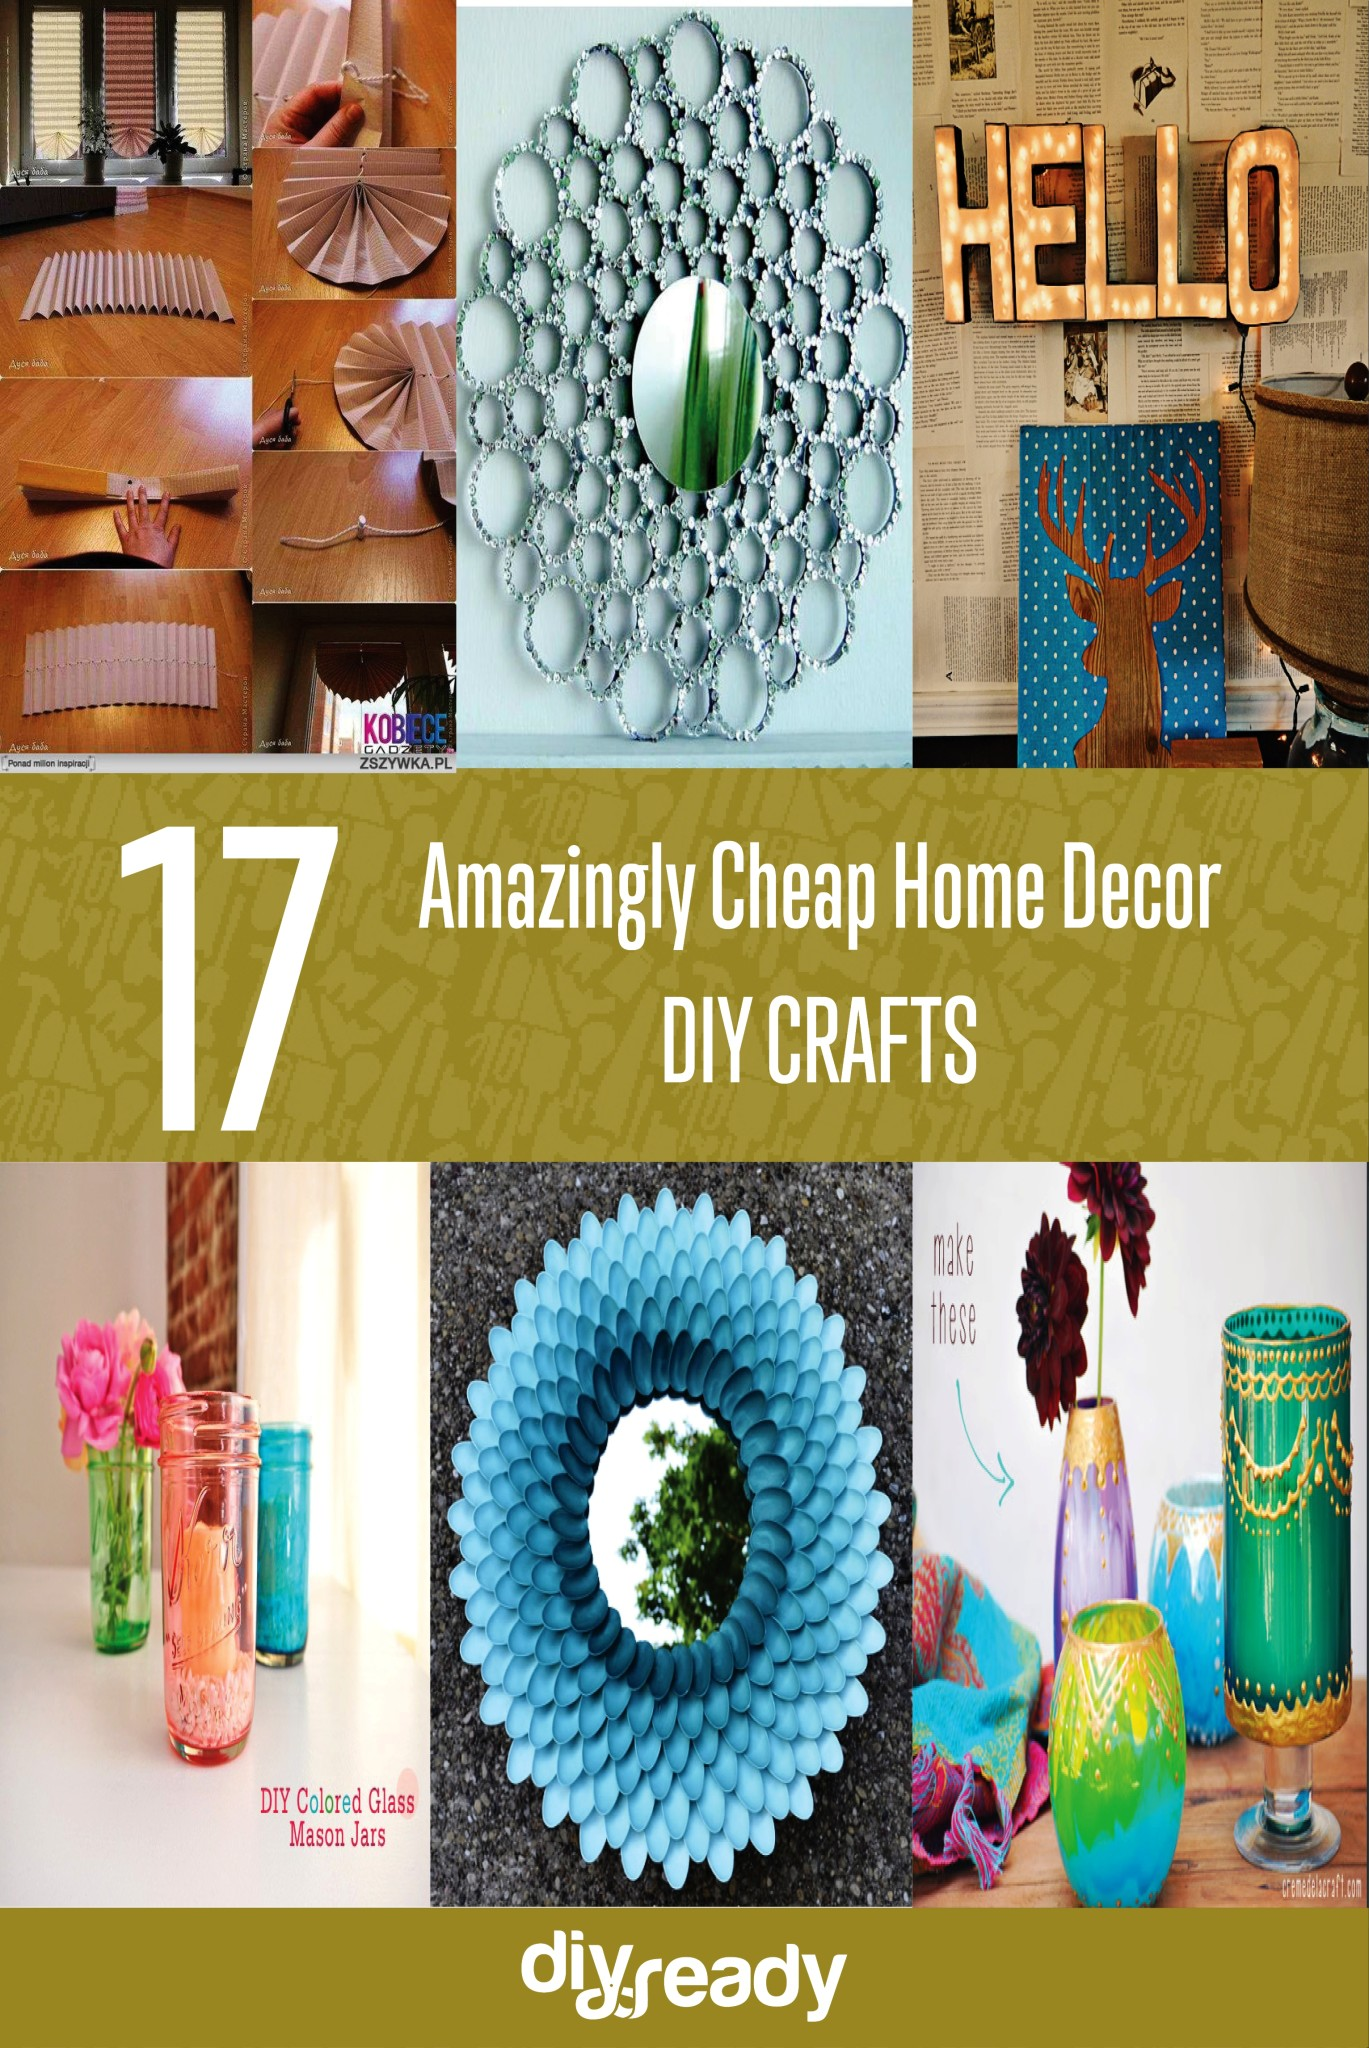 Cheap Home Decor Ideas Diy Projects Craft Ideas How To S For Home Decor With Videos